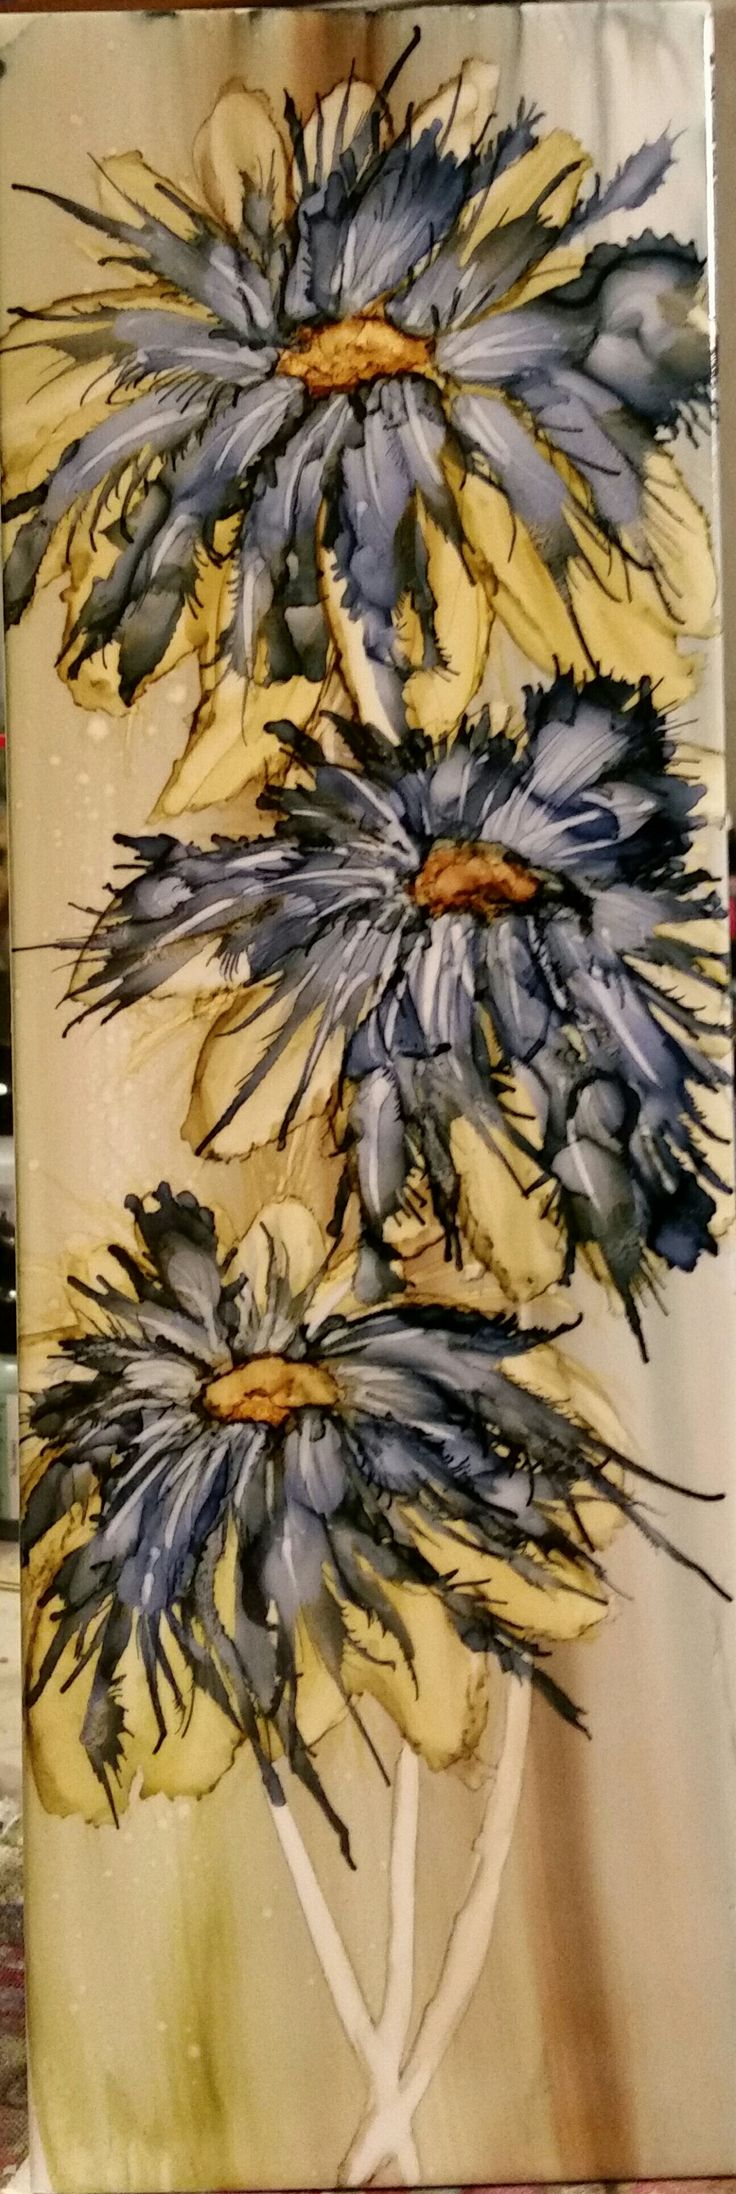 Flowers in alcohol ink on 12x4 ceramic tile by Tina                                                                                                                                                                                 More